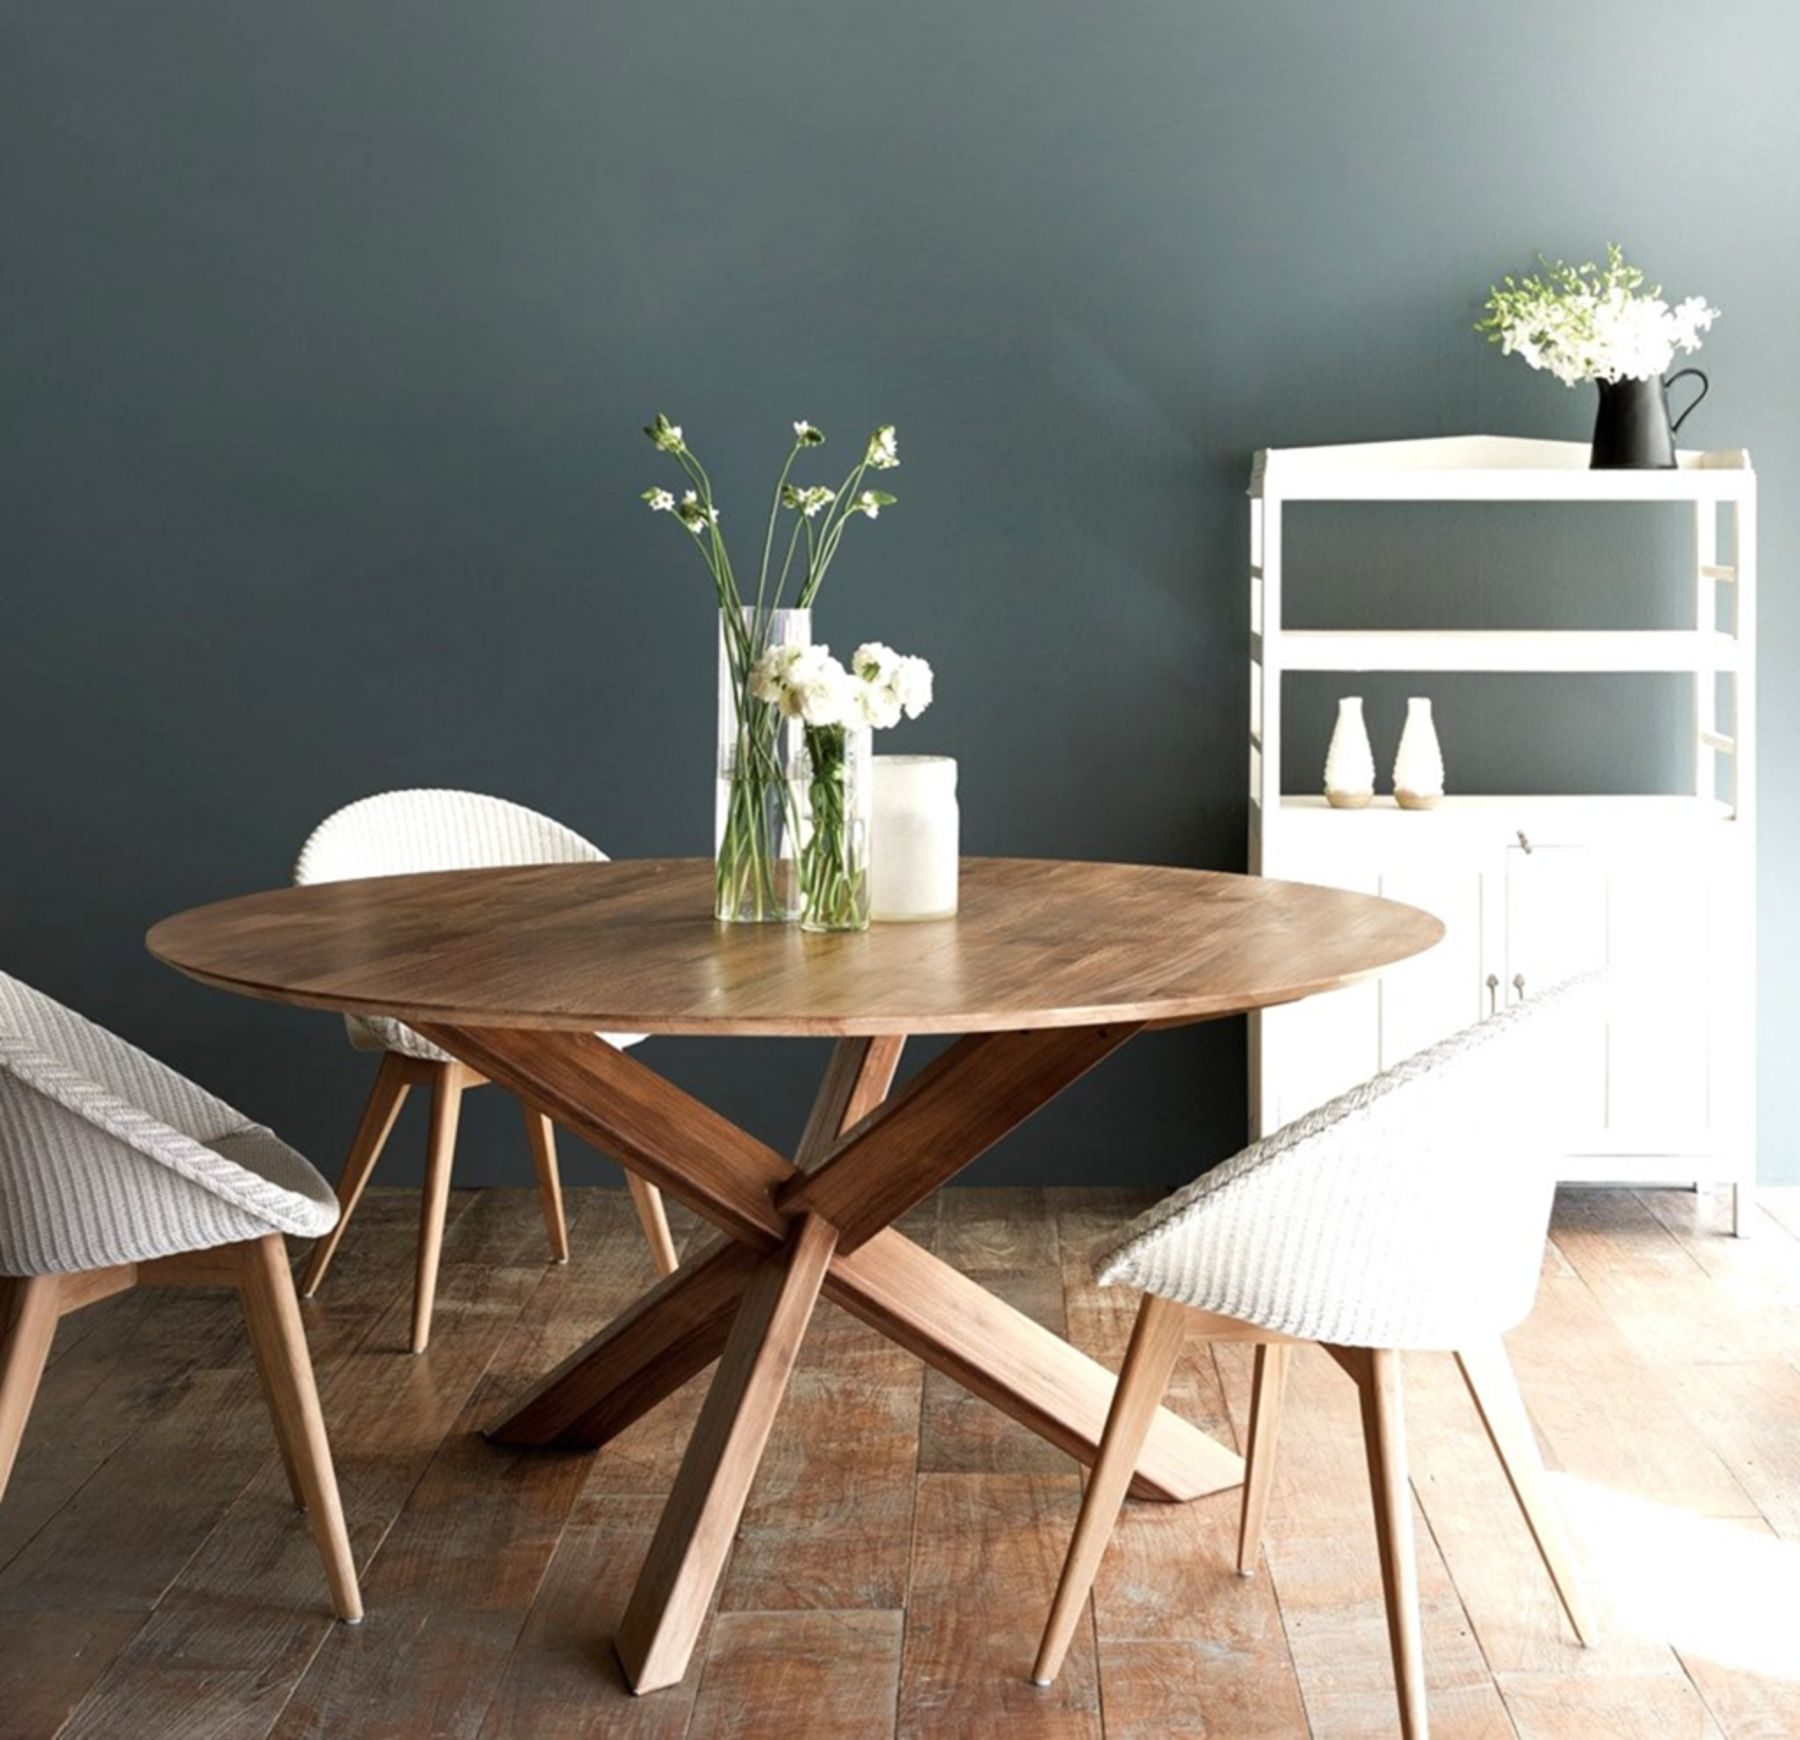 10 Creative Small Dining Room Design Ideas That Will Make Your